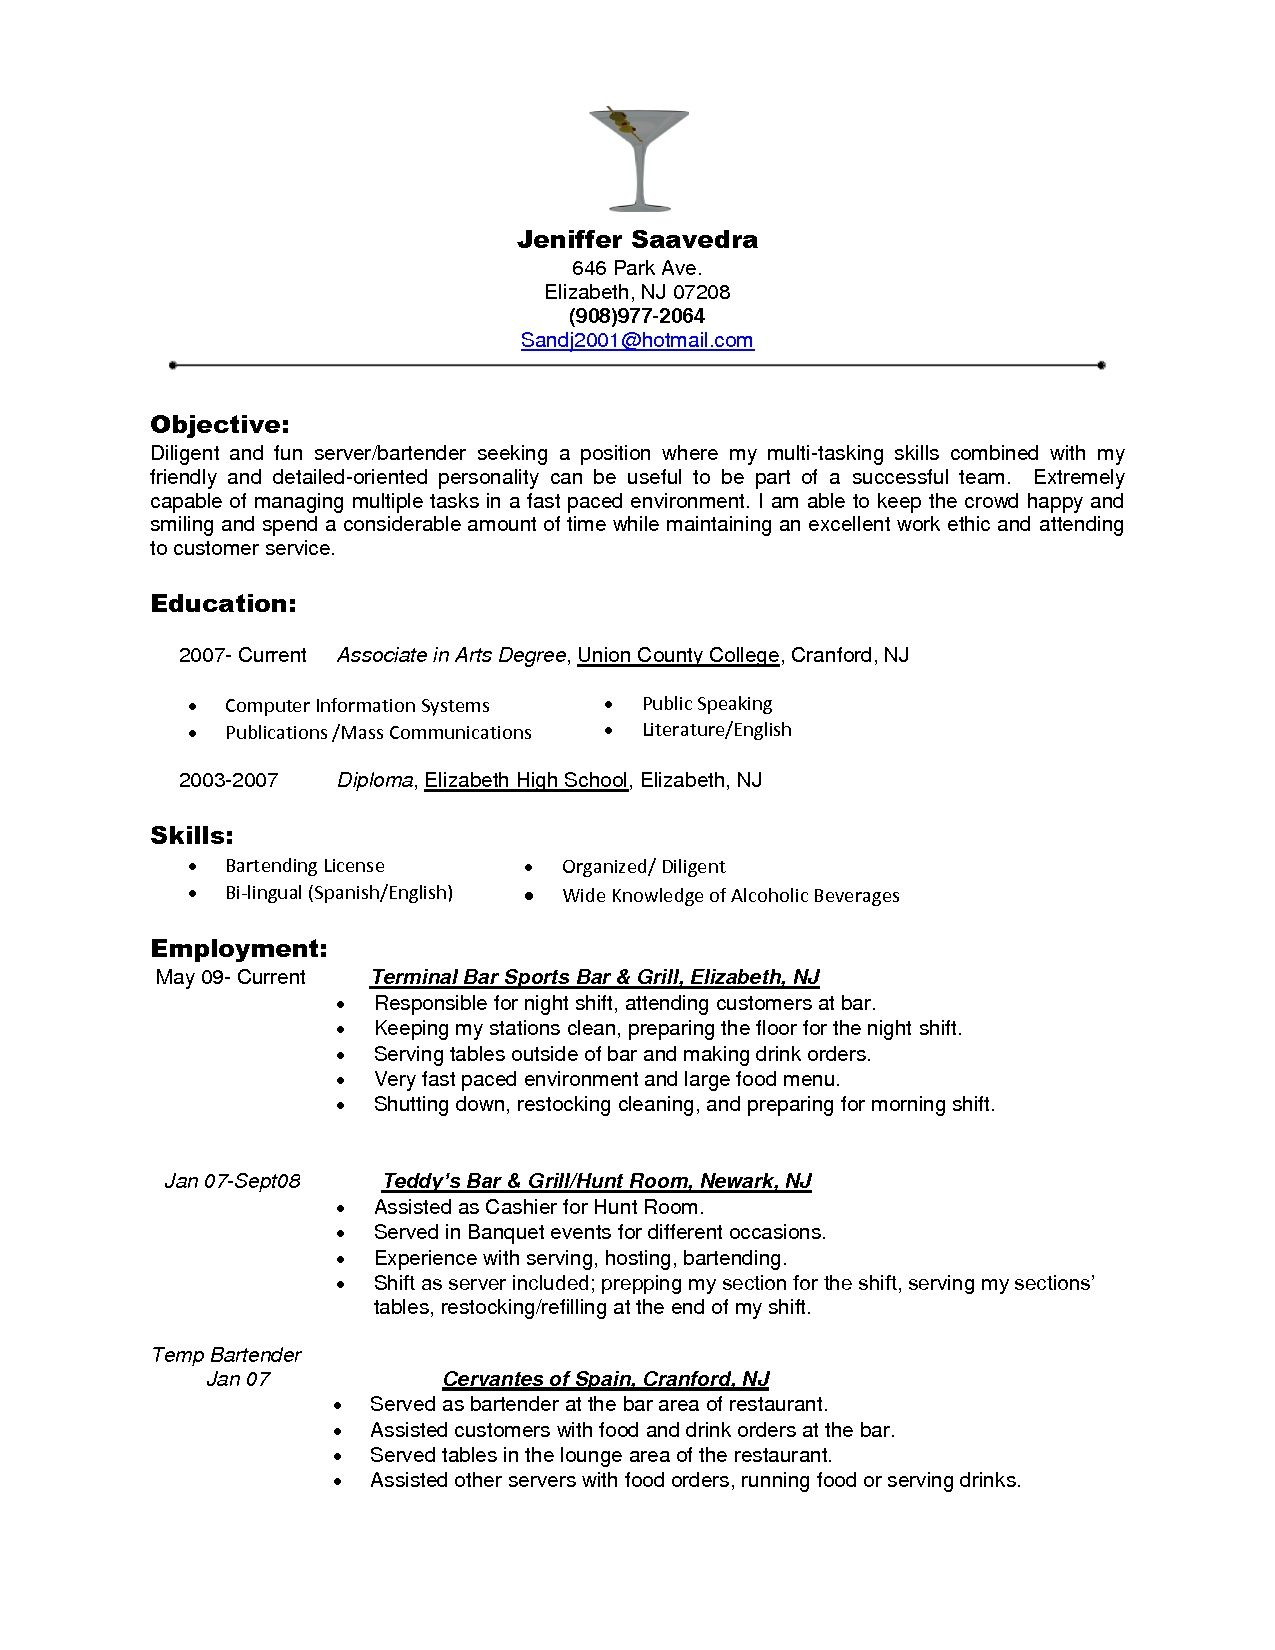 resume Restaurant Objectives For Resume pin by rachel franco on resume writing pinterest skills writing